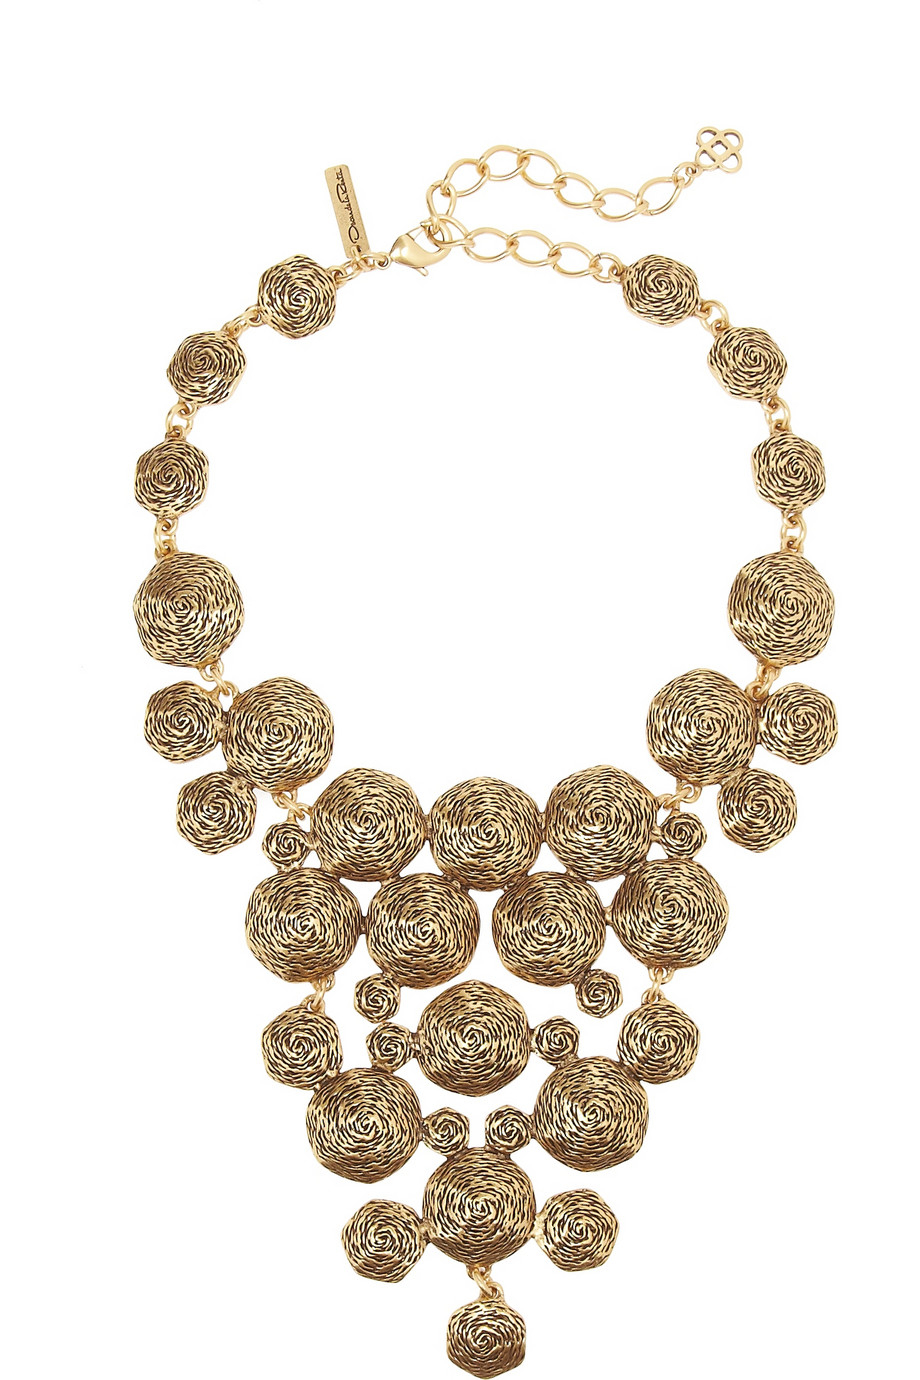 Oscar de la renta Swirl Gold-Plated Necklace in Metallic | Lyst